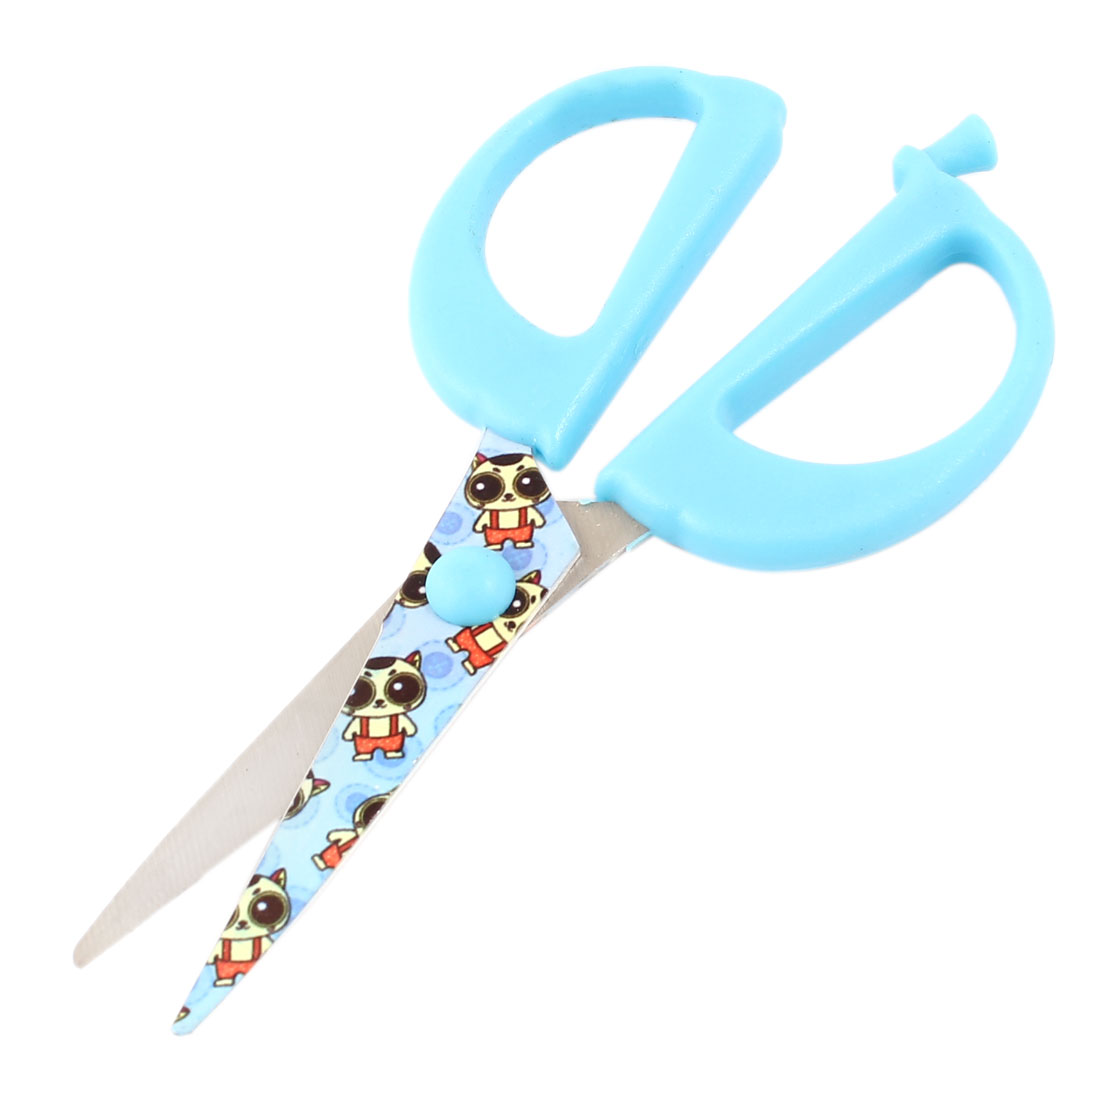 Blue Plastic Coated Metal Grip Straight Blade Scissors Shear Trimmer